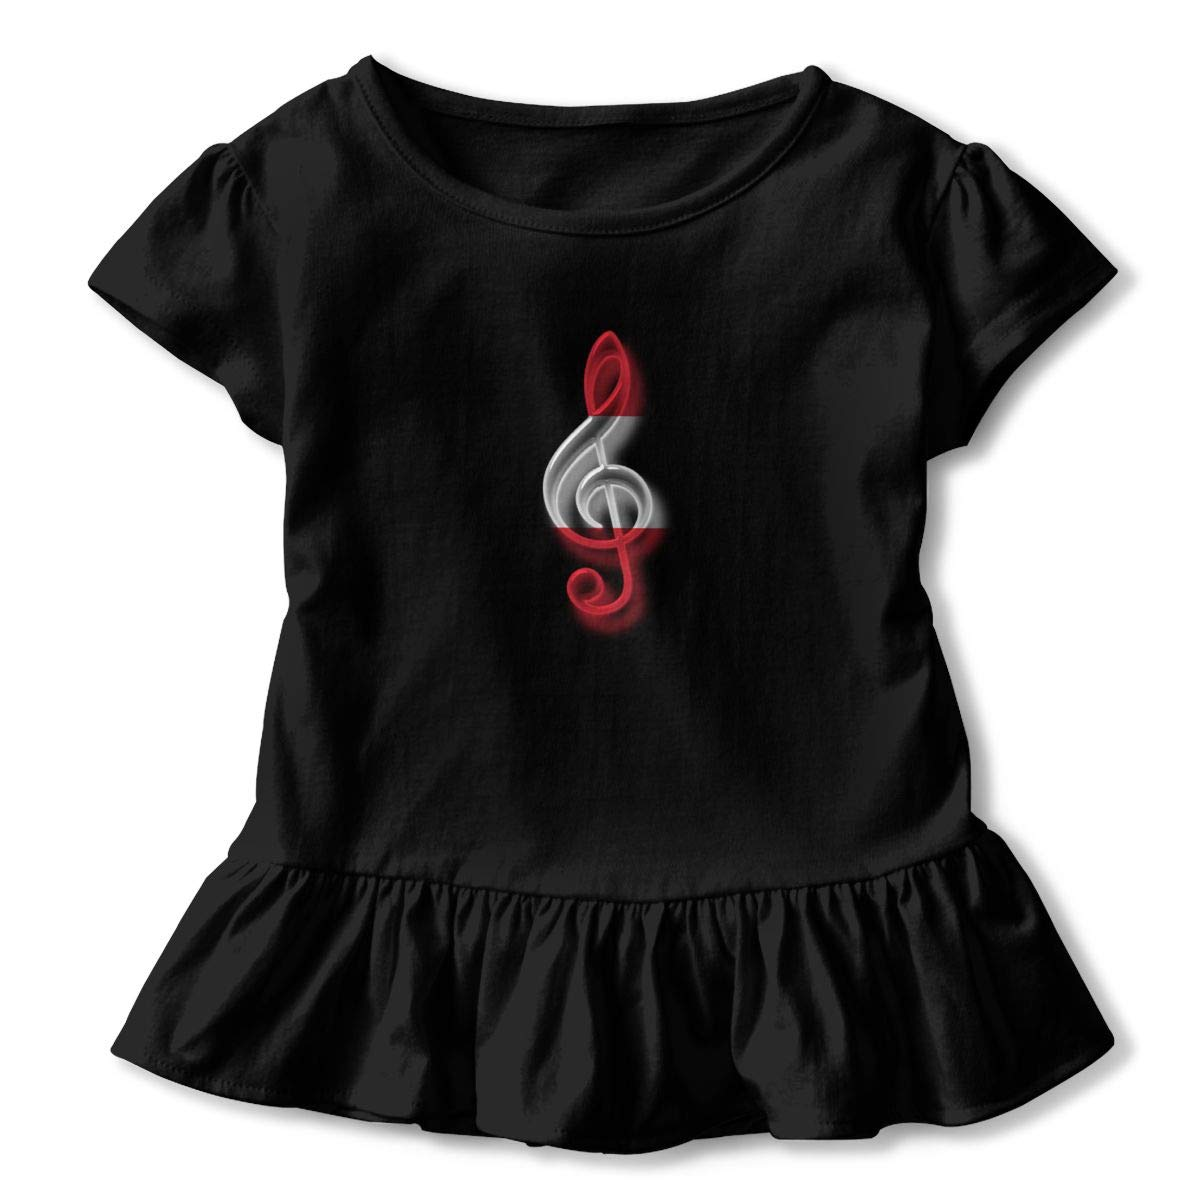 GNKTGBO2O Toddler Baby Girl Austria Music Note 100/% Cotton T Shirts Short Sleeve Ruffle Tee Basic Tops